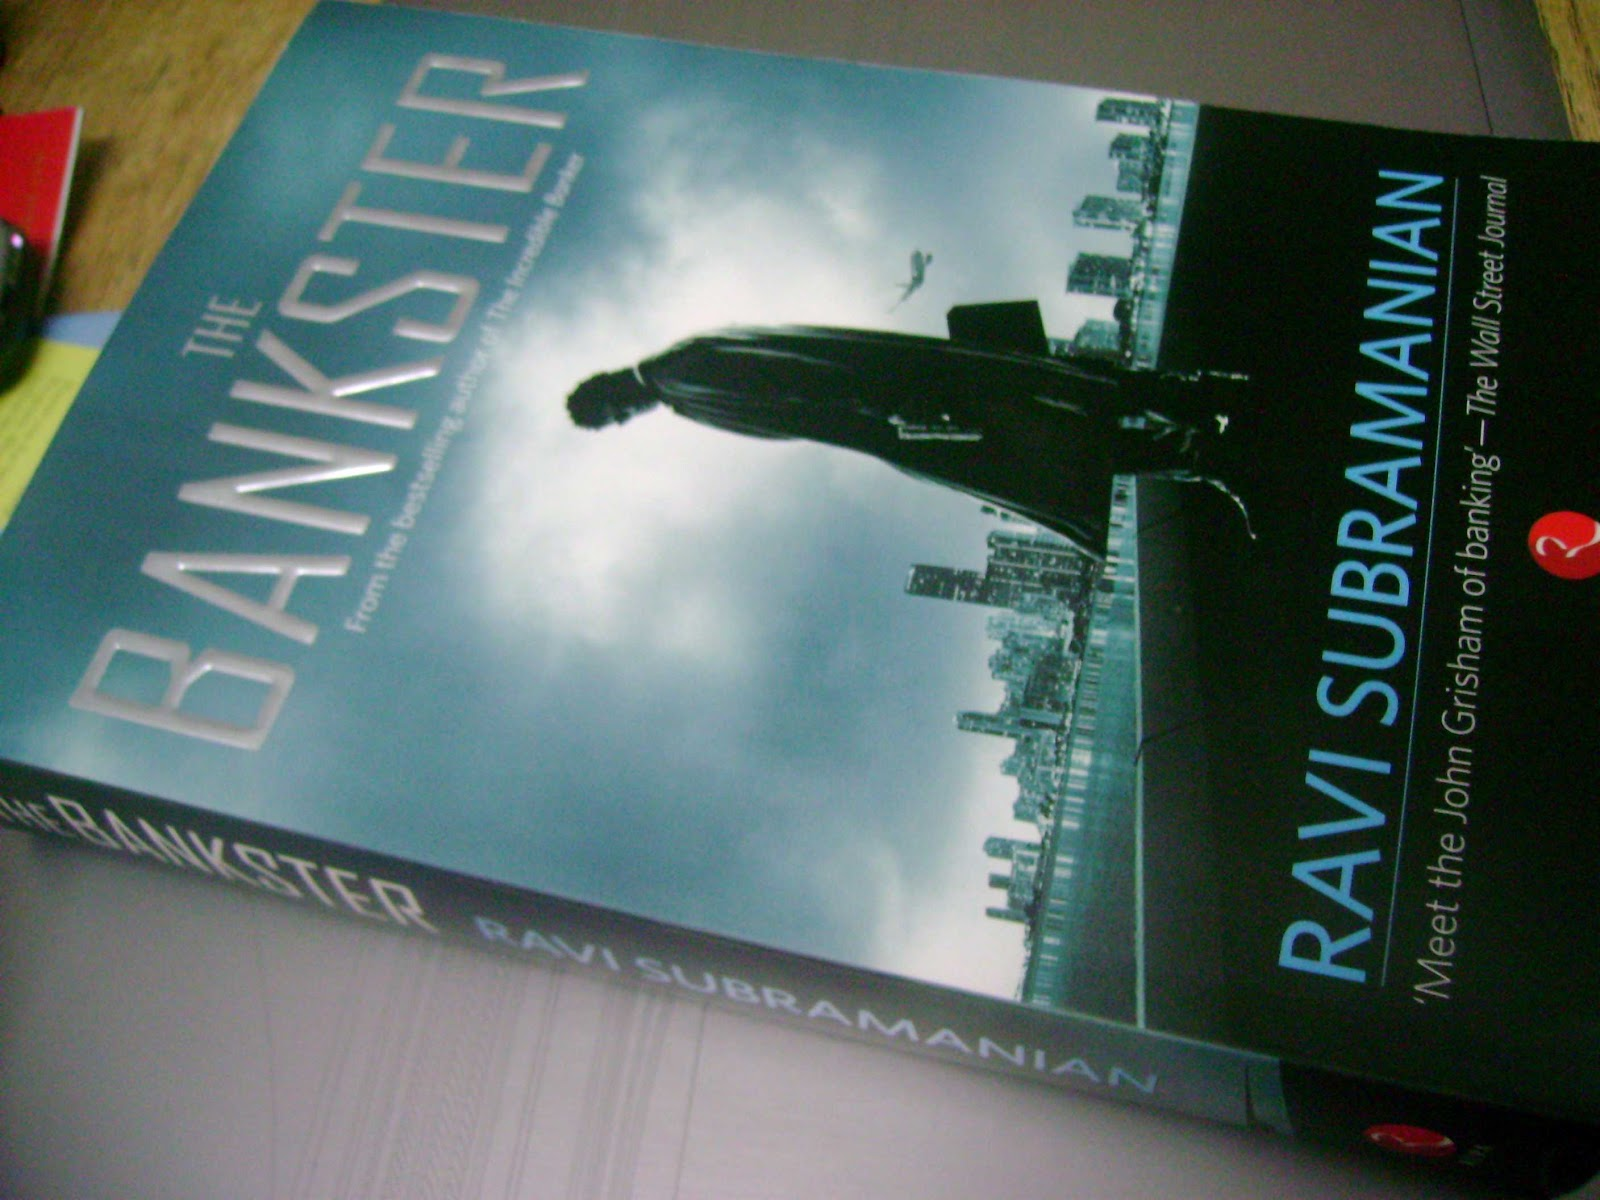 The Bankster by Ravi Subramanian Book Review